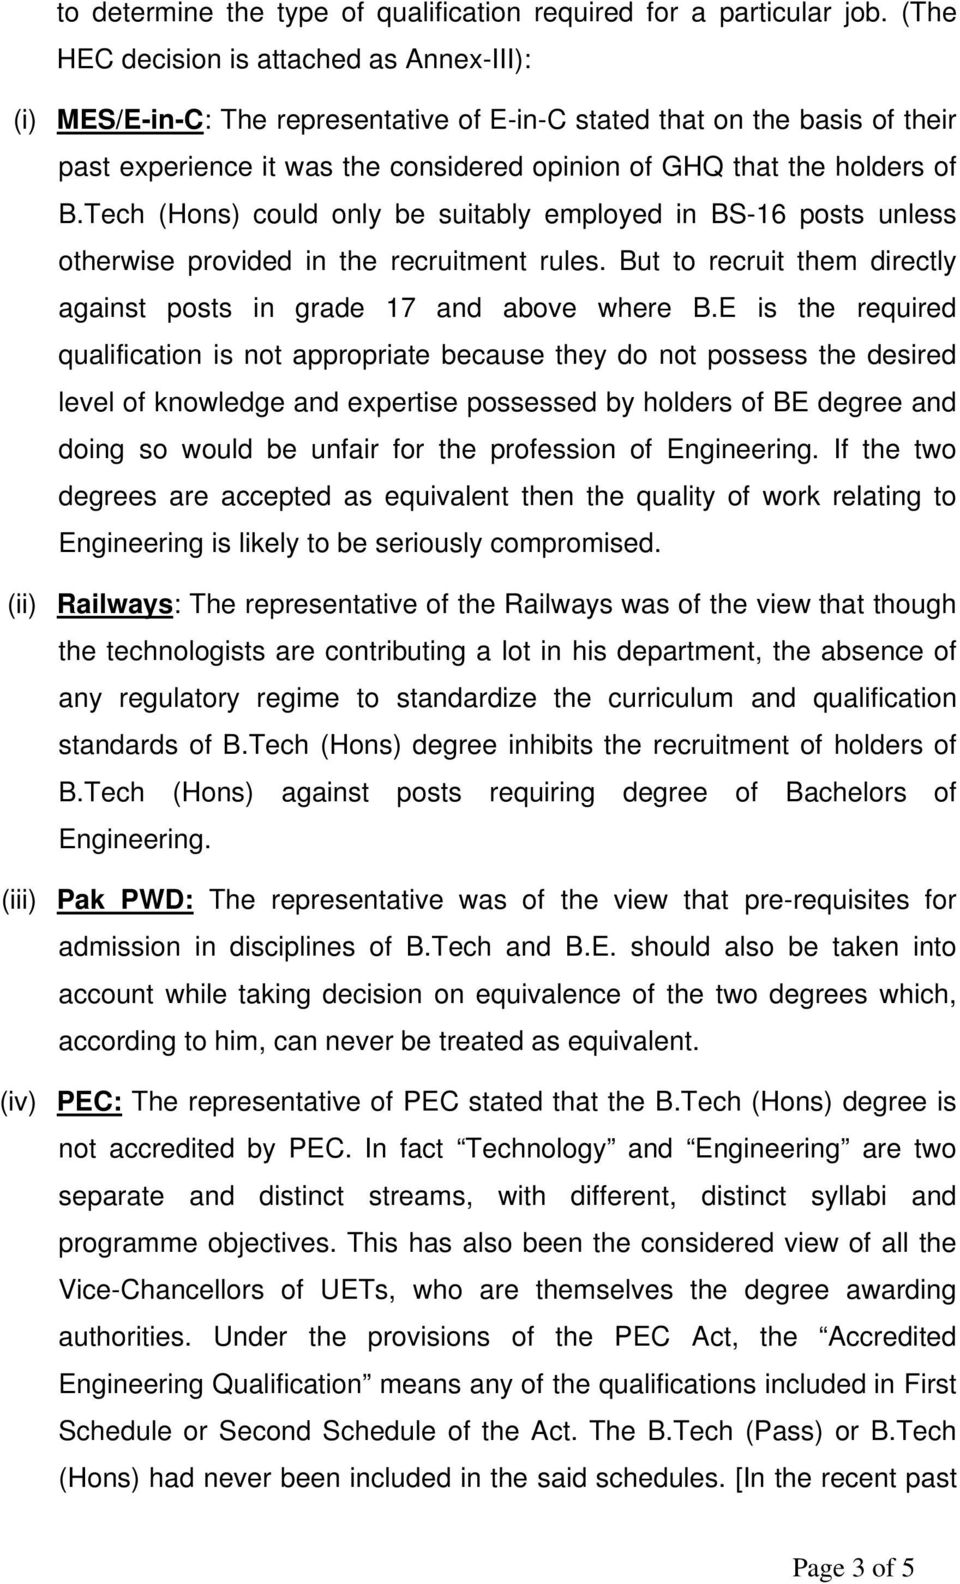 Tech (Hons) could only be suitably employed in BS-16 posts unless otherwise provided in the recruitment rules. But to recruit them directly against posts in grade 17 and above where B.